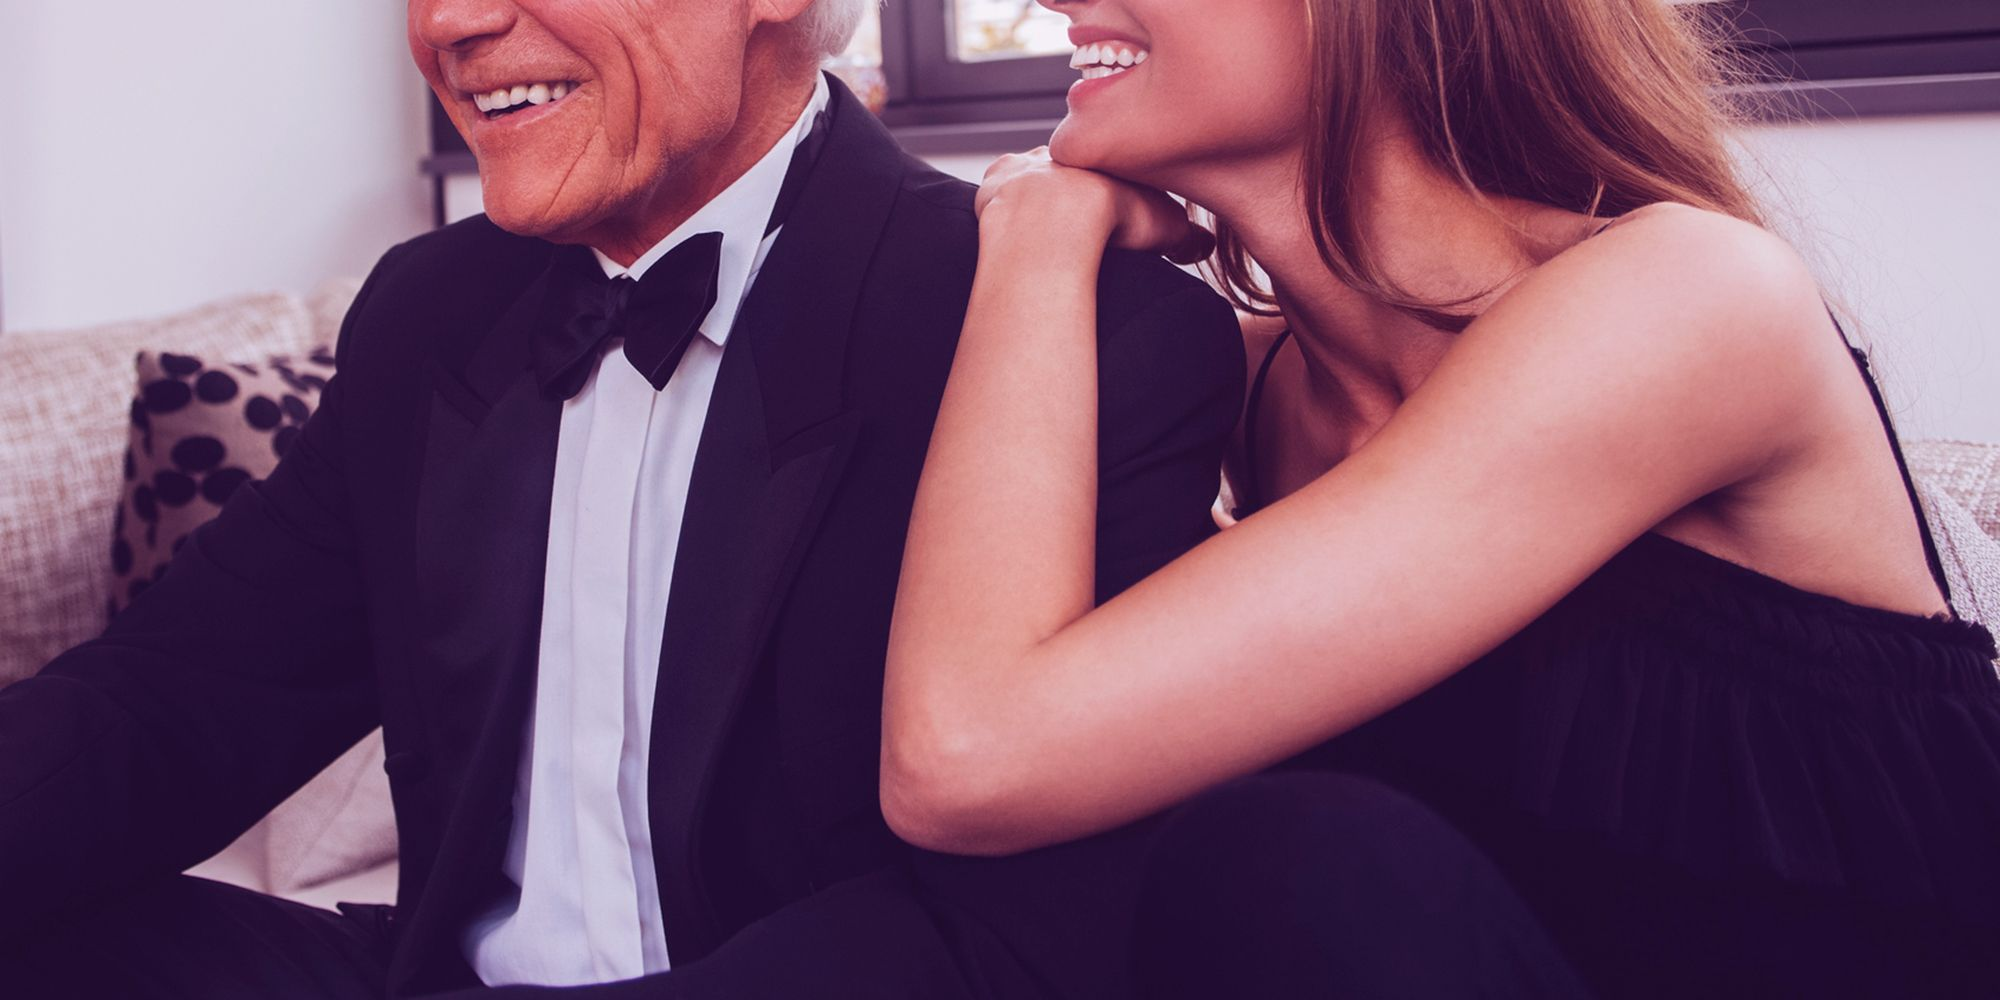 What it's like to be a 20-year-old woman dating a man in his 50s